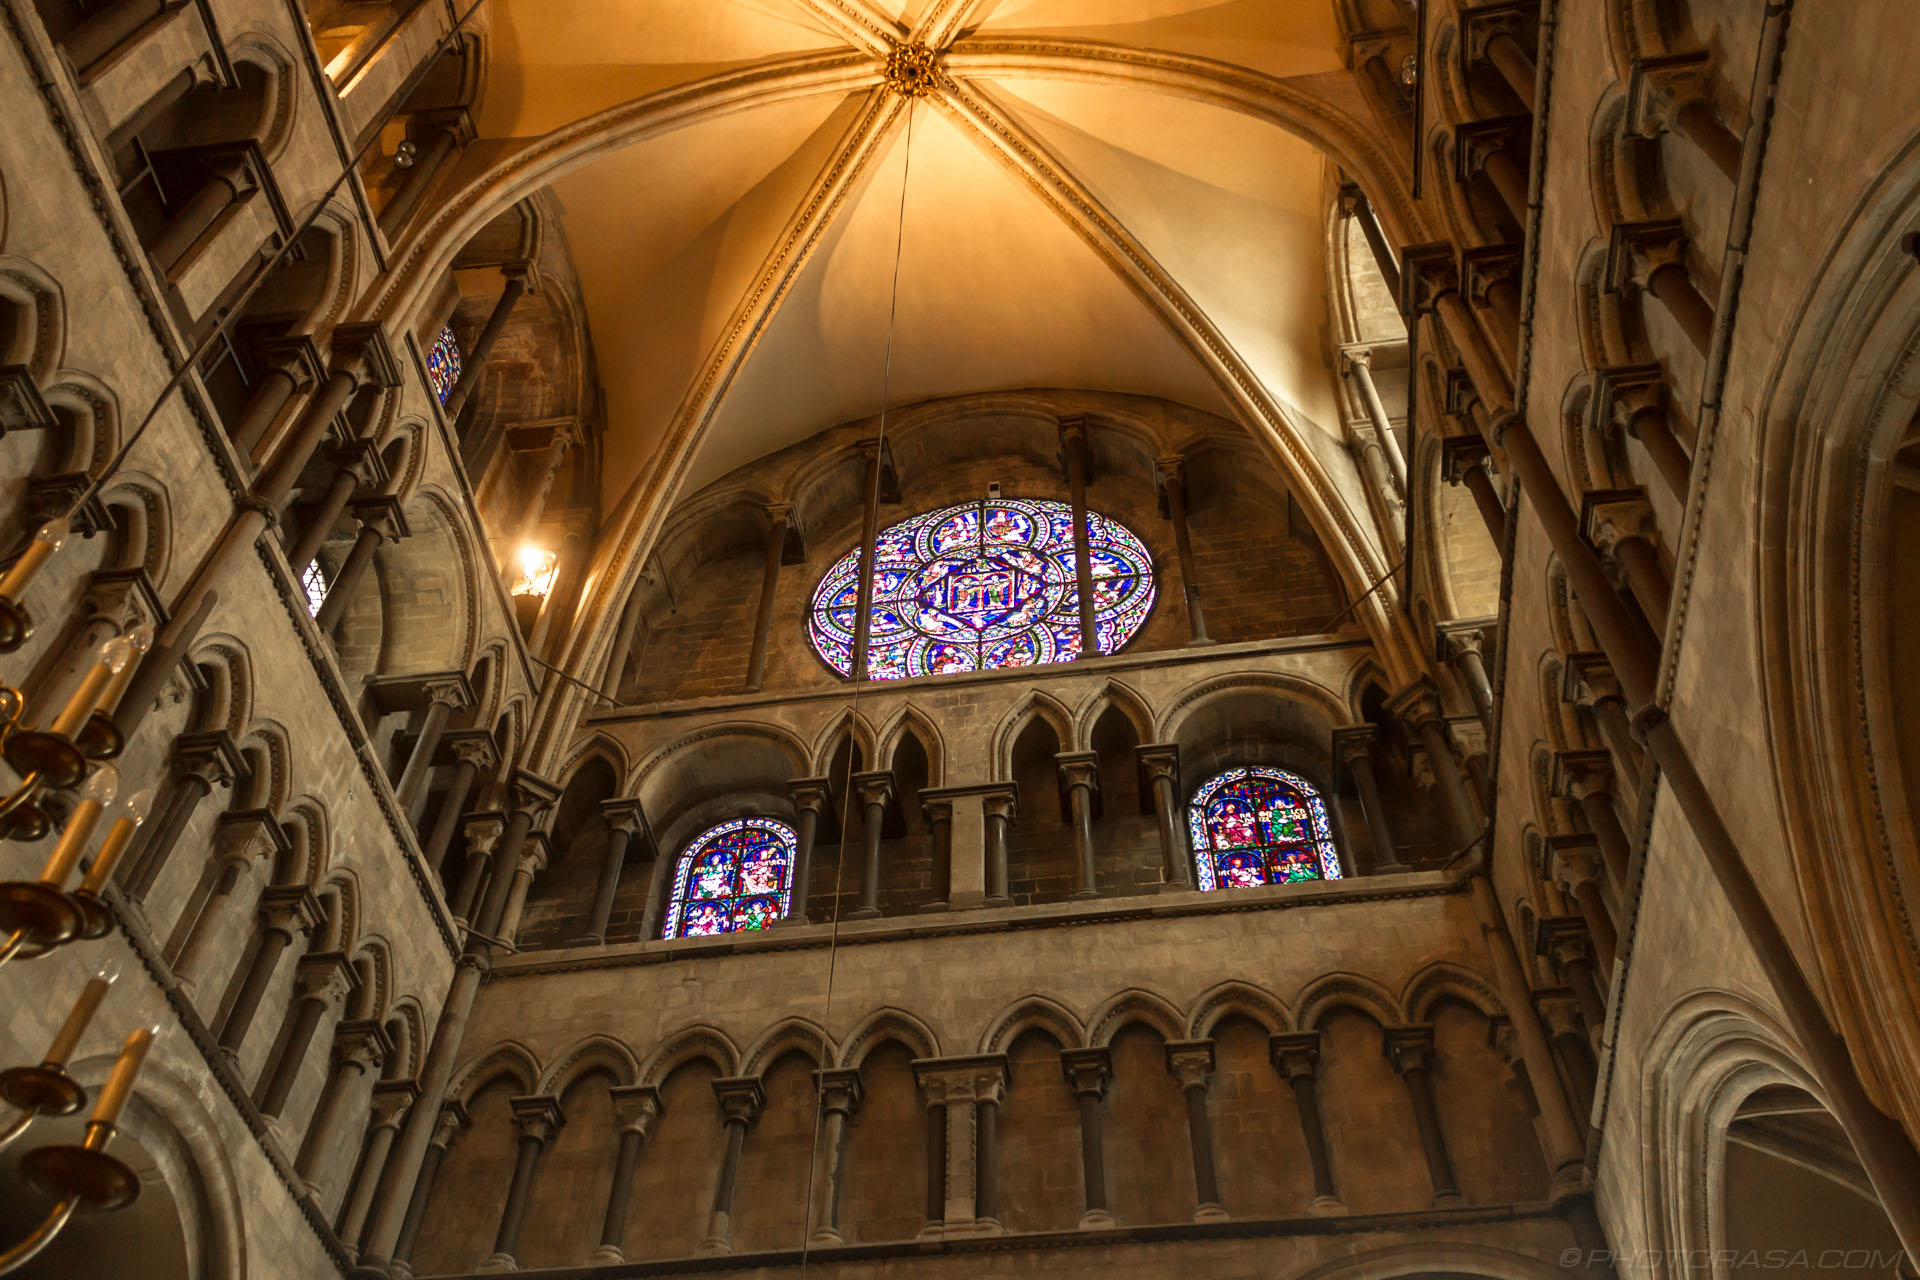 http://photorasa.com/canterbury-cathedral/stained-glass-and-vault-ceiling-in-south-east-transept/